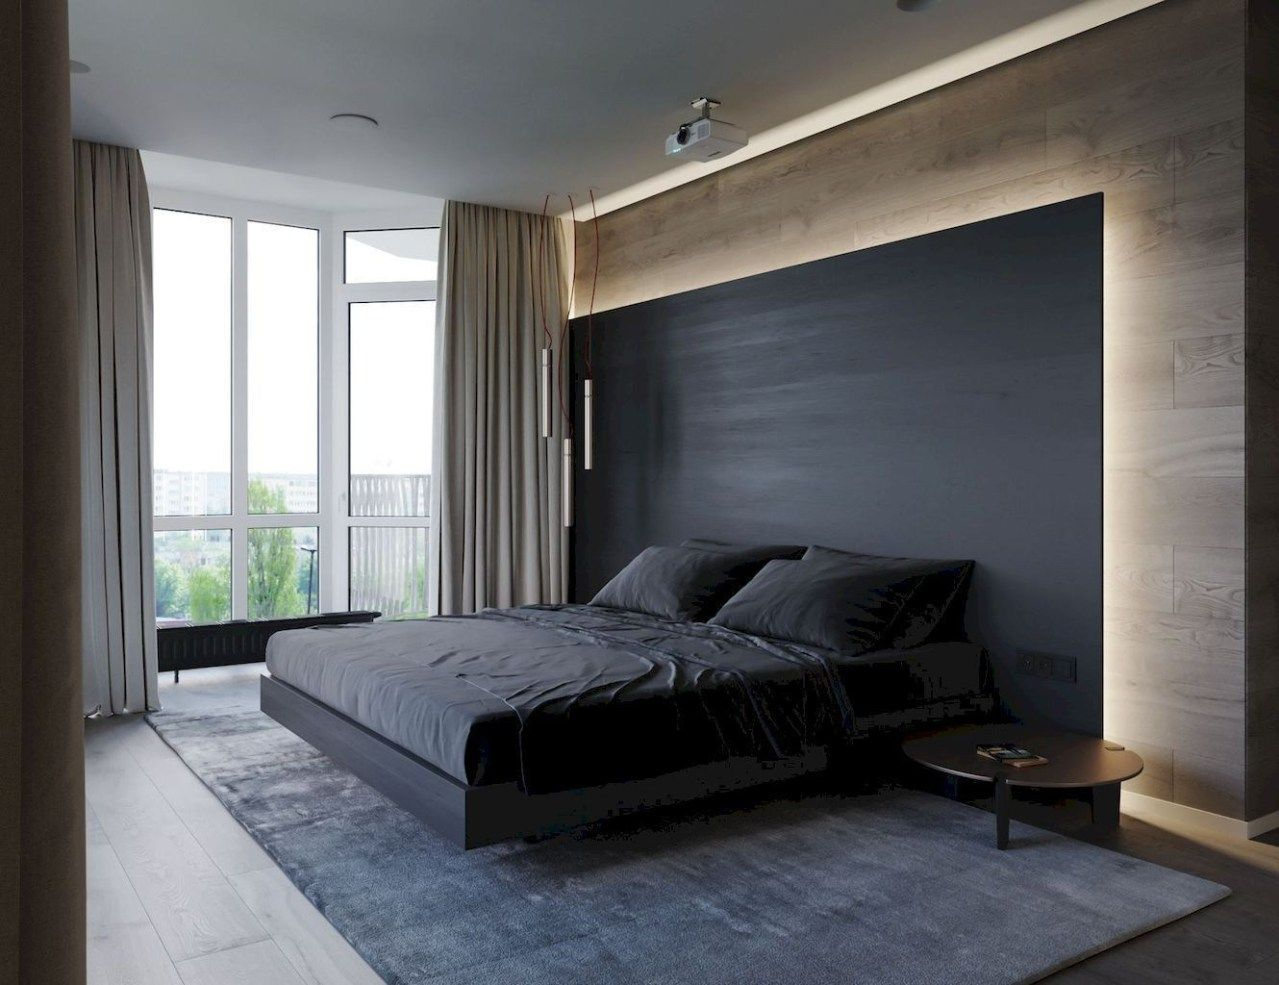 47 The Best Modern Bedroom Designs That Trend In This Year Matchness Com Modern Bedroom Design Fresh Bedroom Modern Bedroom